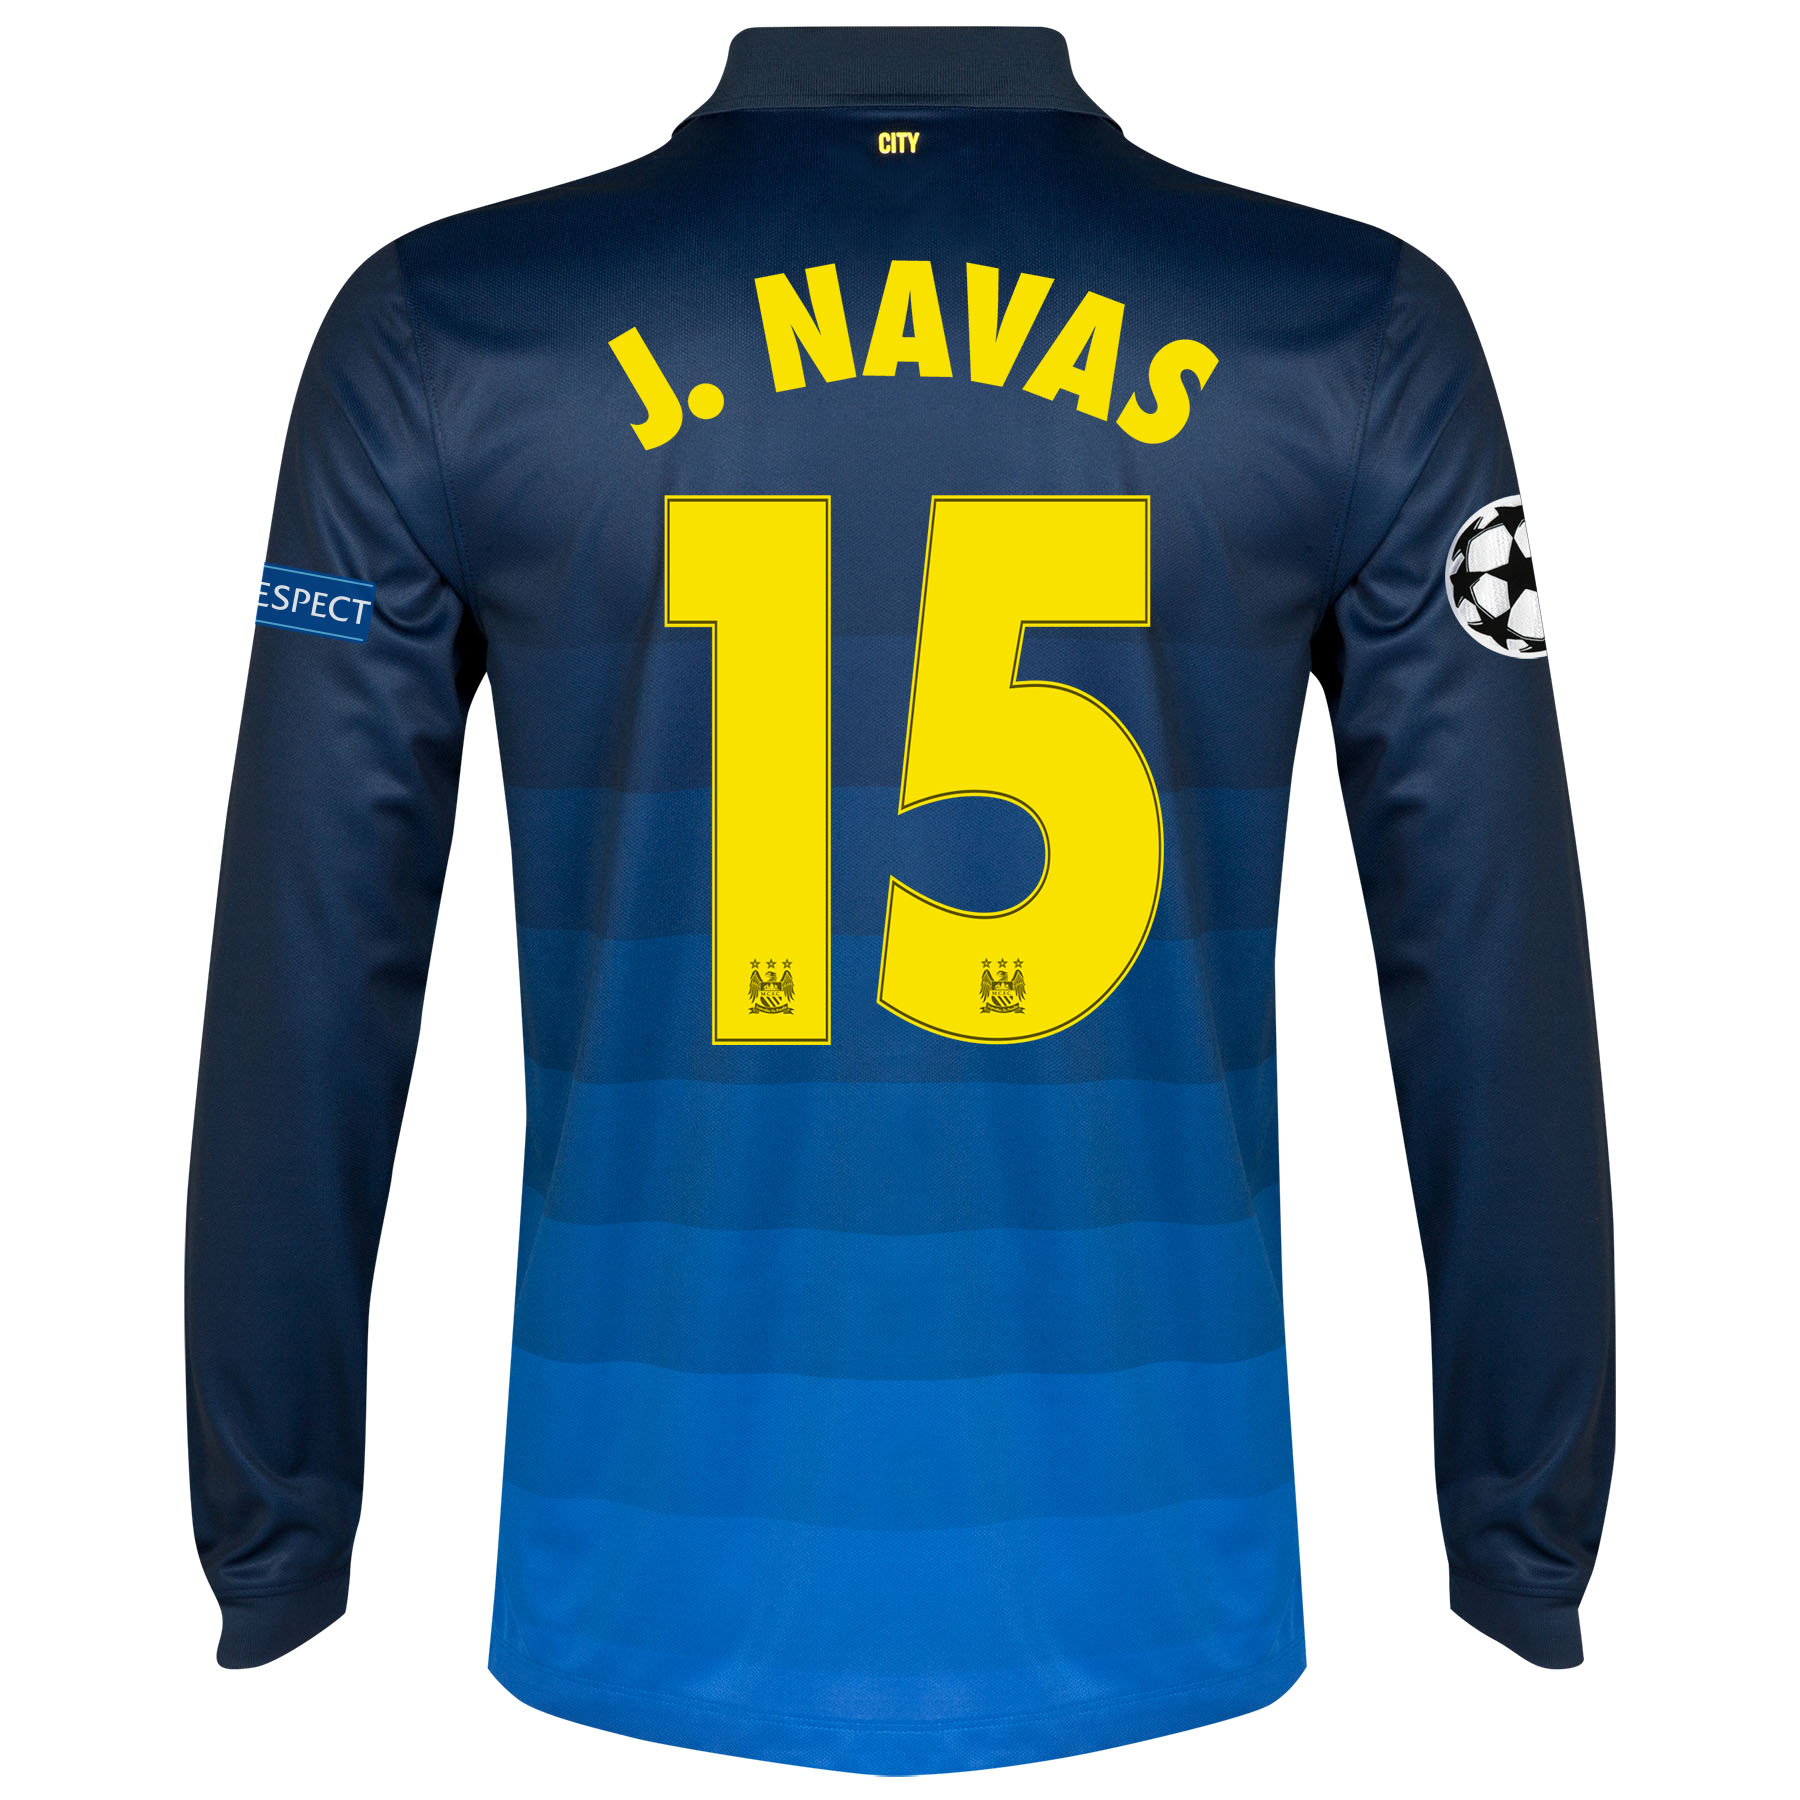 Manchester City UEFA Champions League Away Shirt 2014/15 - Long Sleeve with J.Navas 15 printing